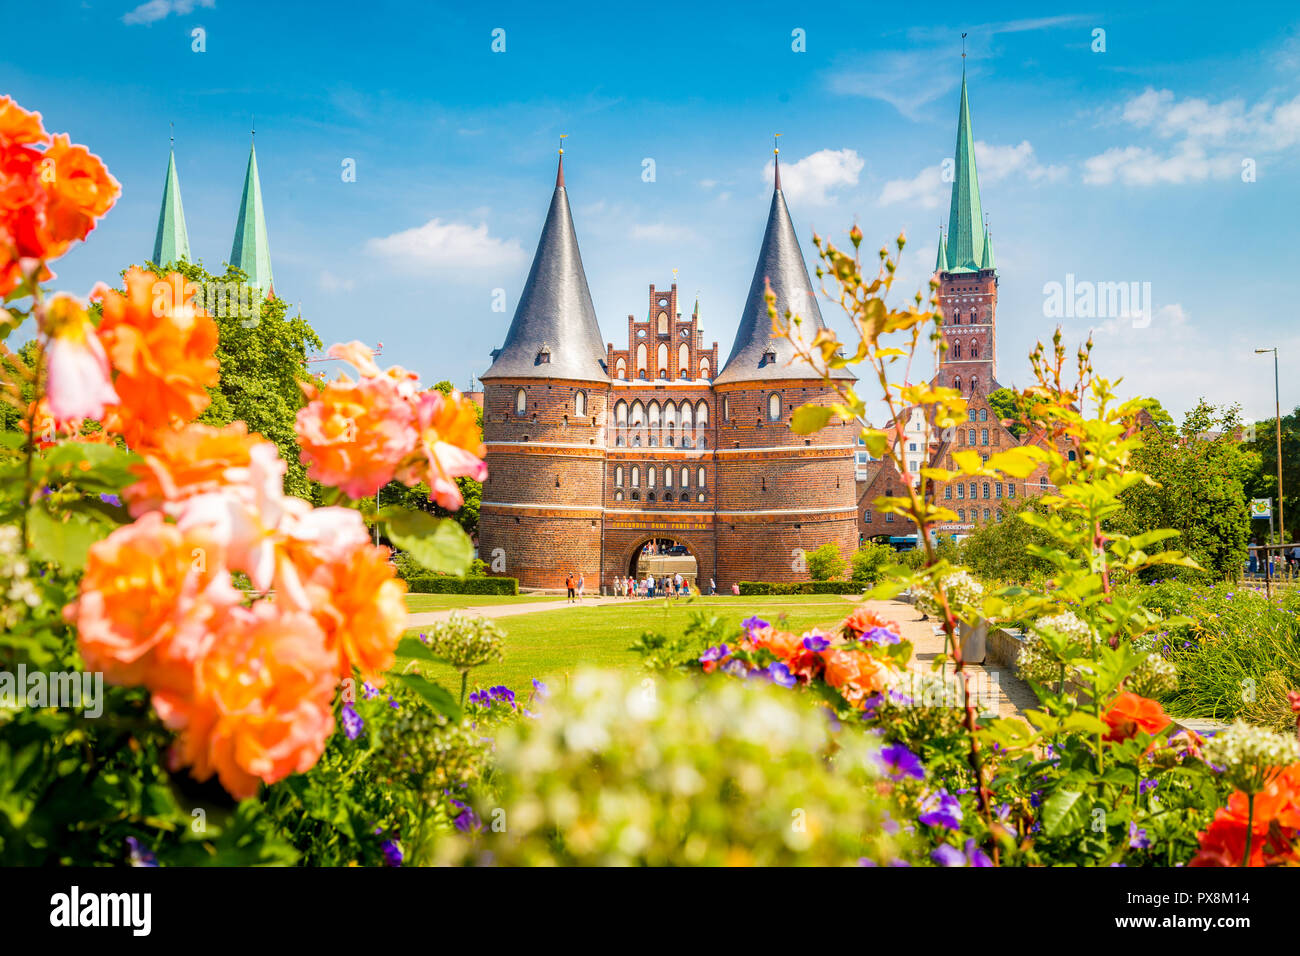 Classic postcard view of the historic town of Lübeck with famous Holstentor gate in summer, Schleswig-Holstein, northern Germany - Stock Image